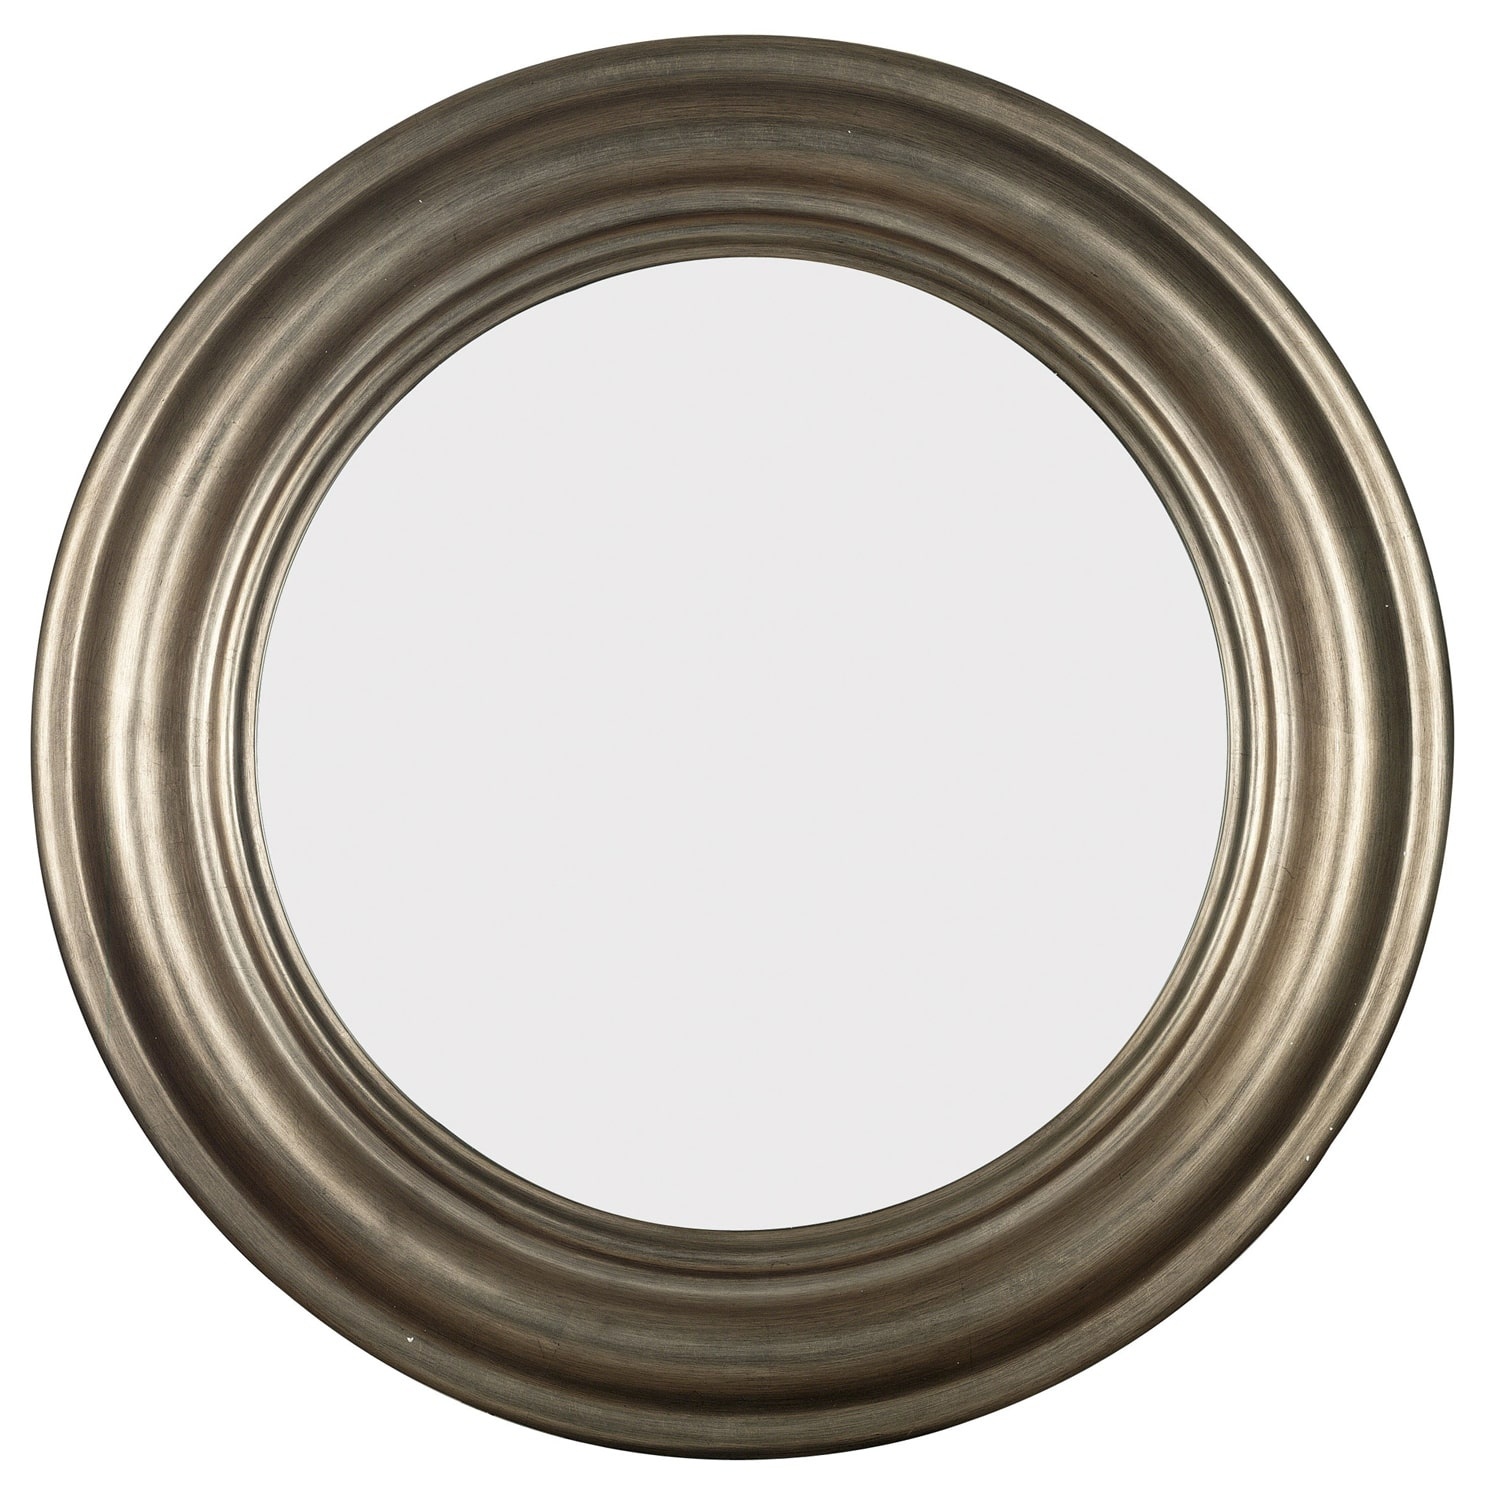 Pasco Round Antique Silver Wall Mirror Free Shipping Today With Regard To Round Silver Mirror (View 3 of 15)